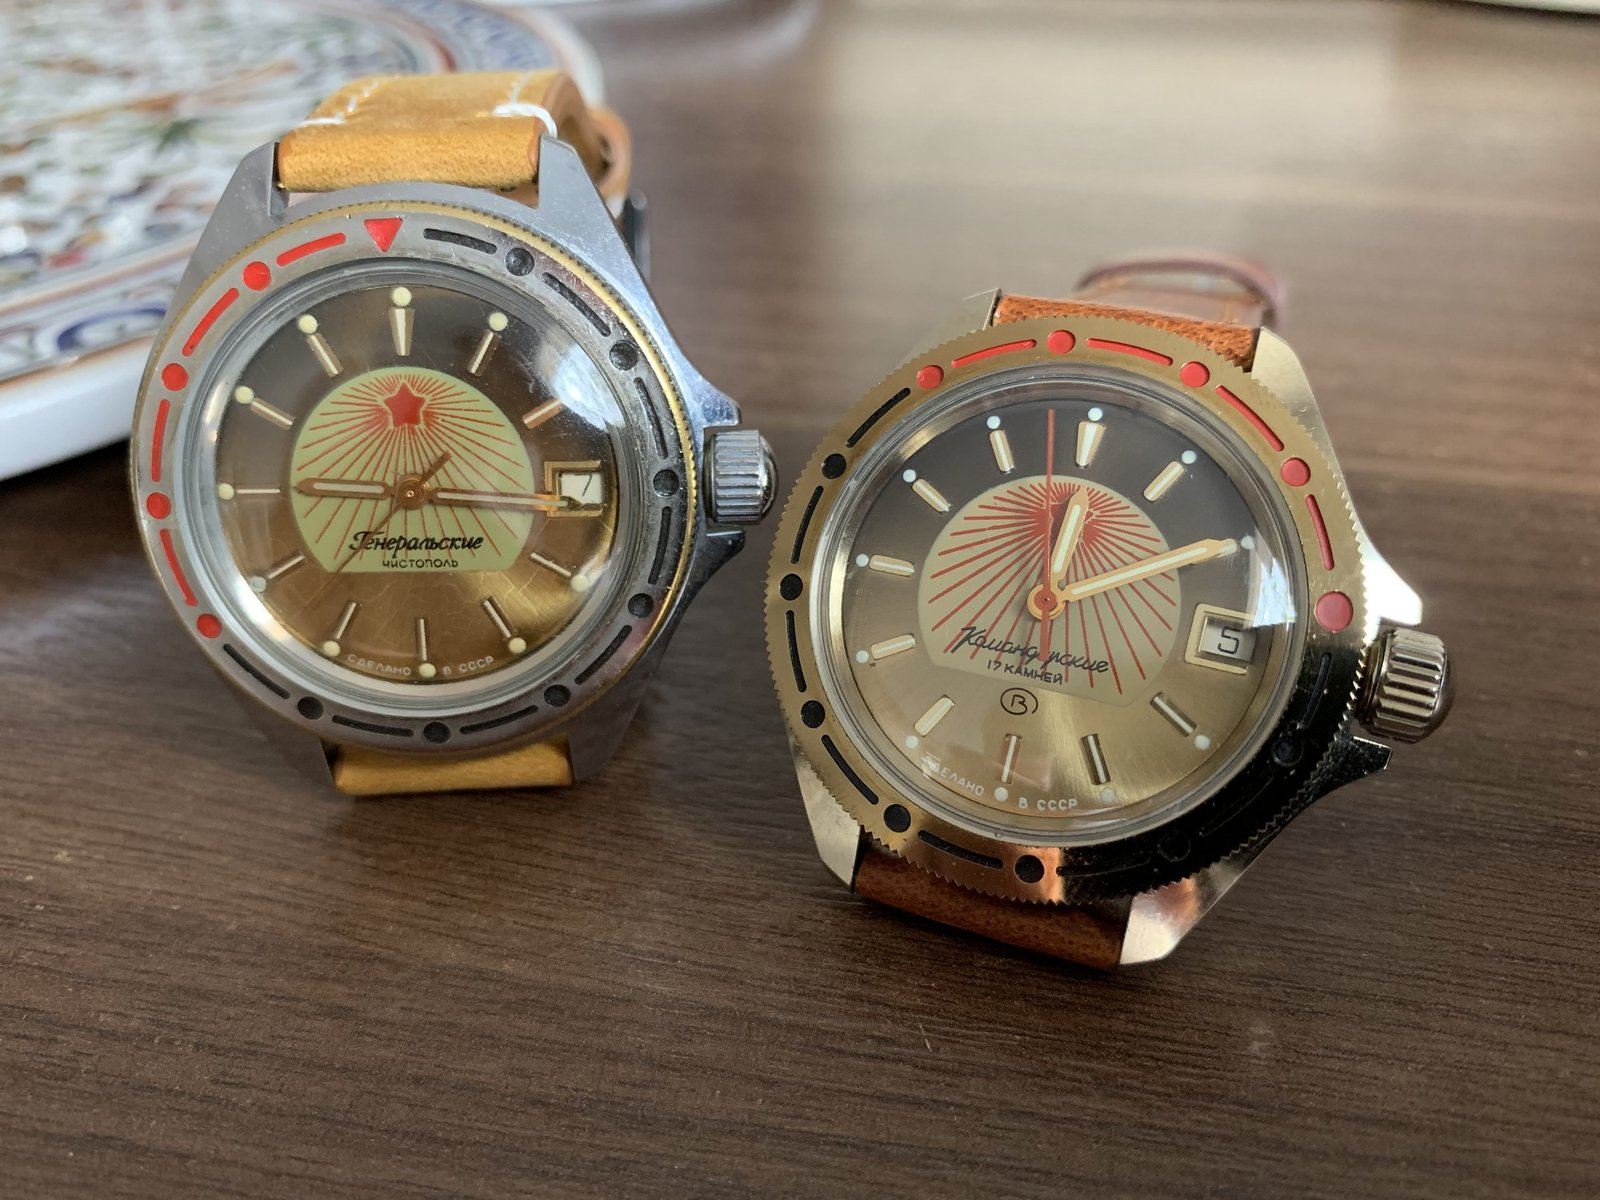 vostok rising sun red star CHIR - Page 13 210410122430599492